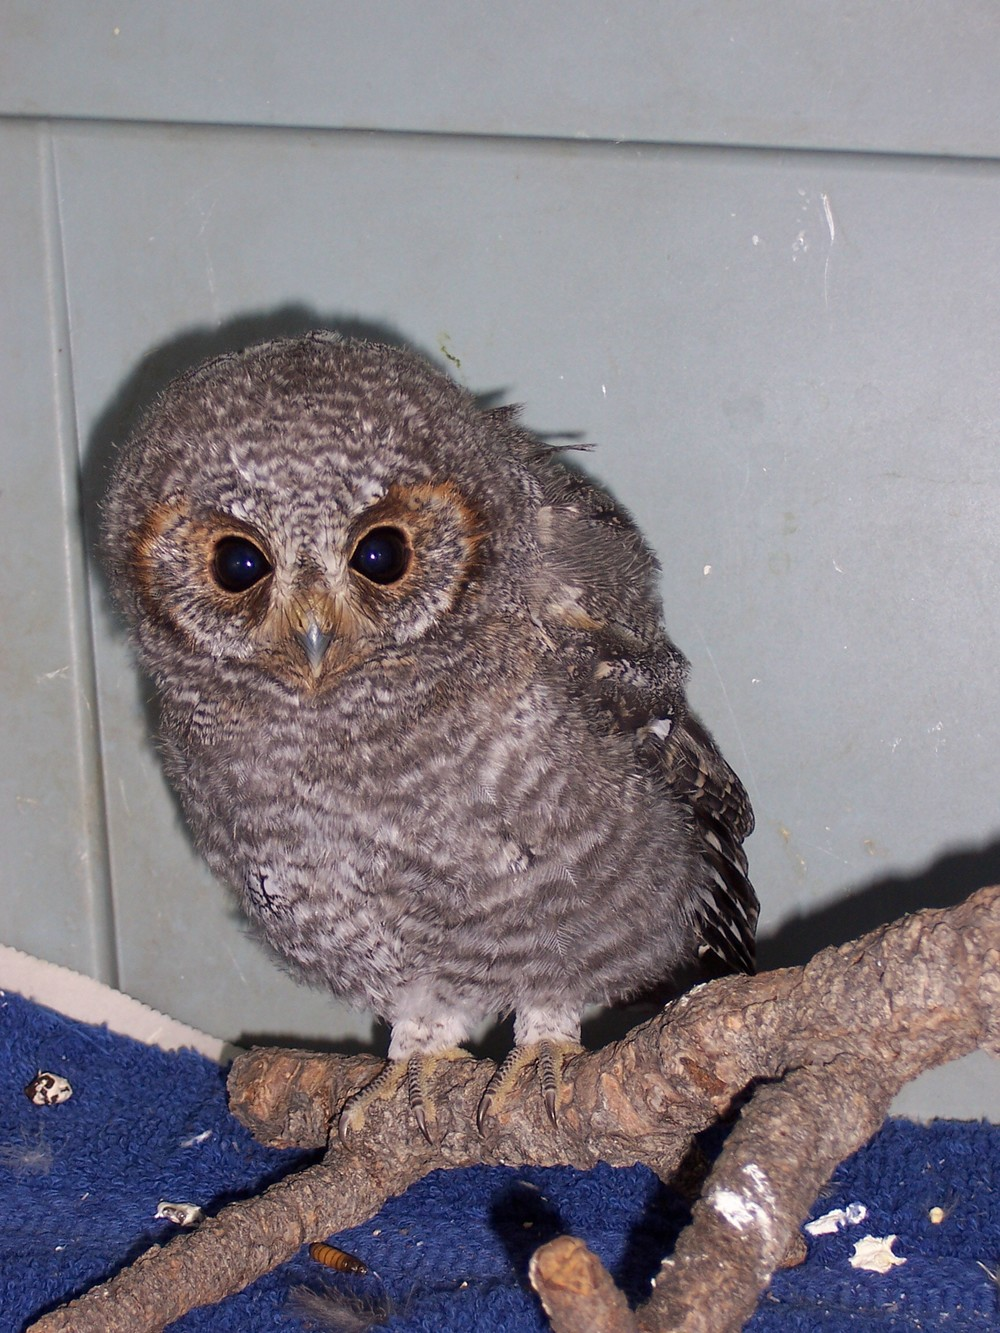 This Flammulated Owl was found on the ground and was raised by CARRI volunteers and released in the fall prior to its migration to Mexico.